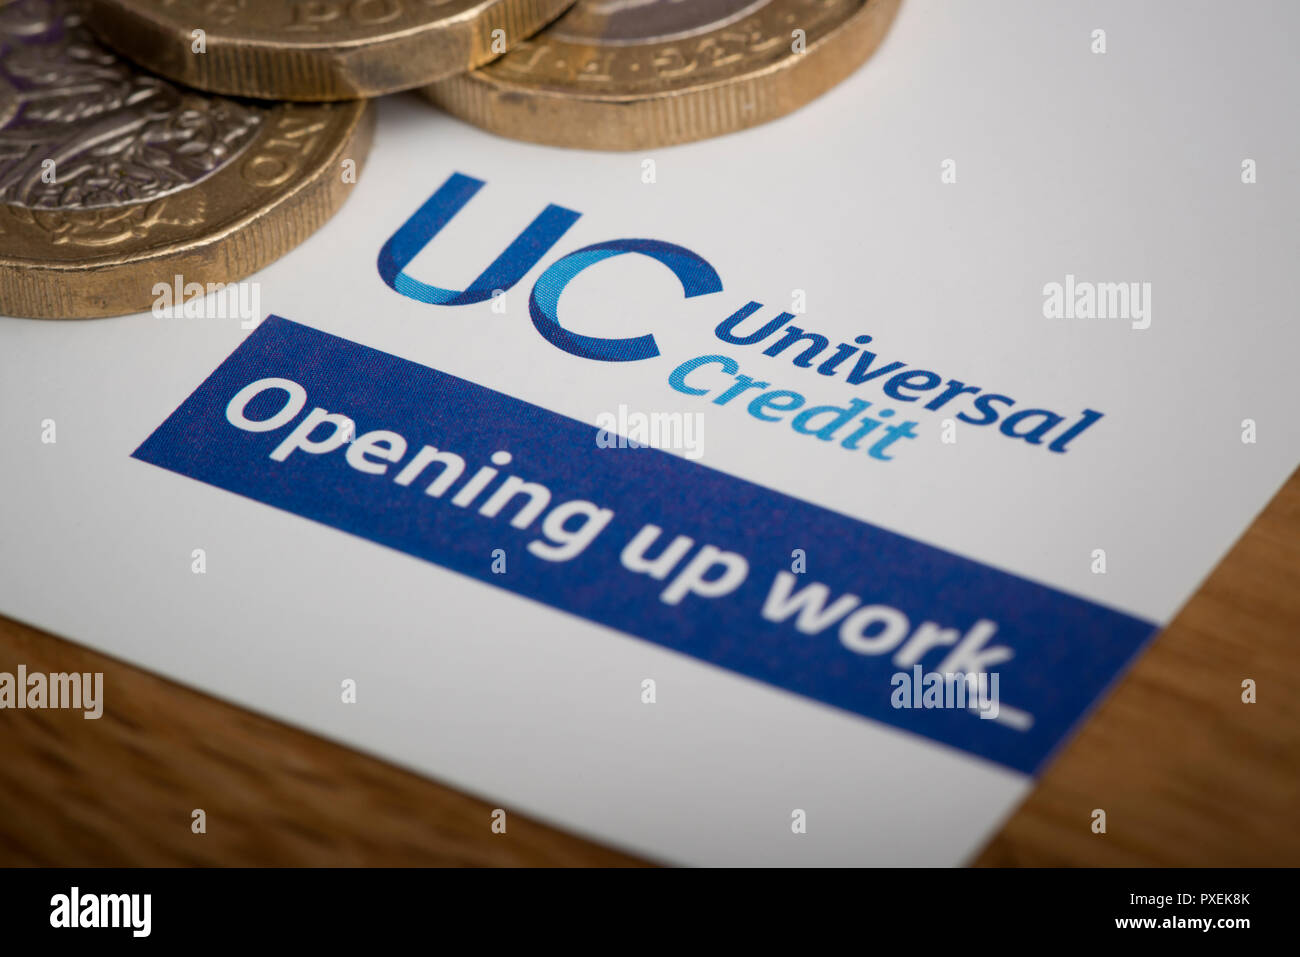 A piece of stationery featuring the Universal Credit logo, rests on a table along with some £1 coins. Stock Photo